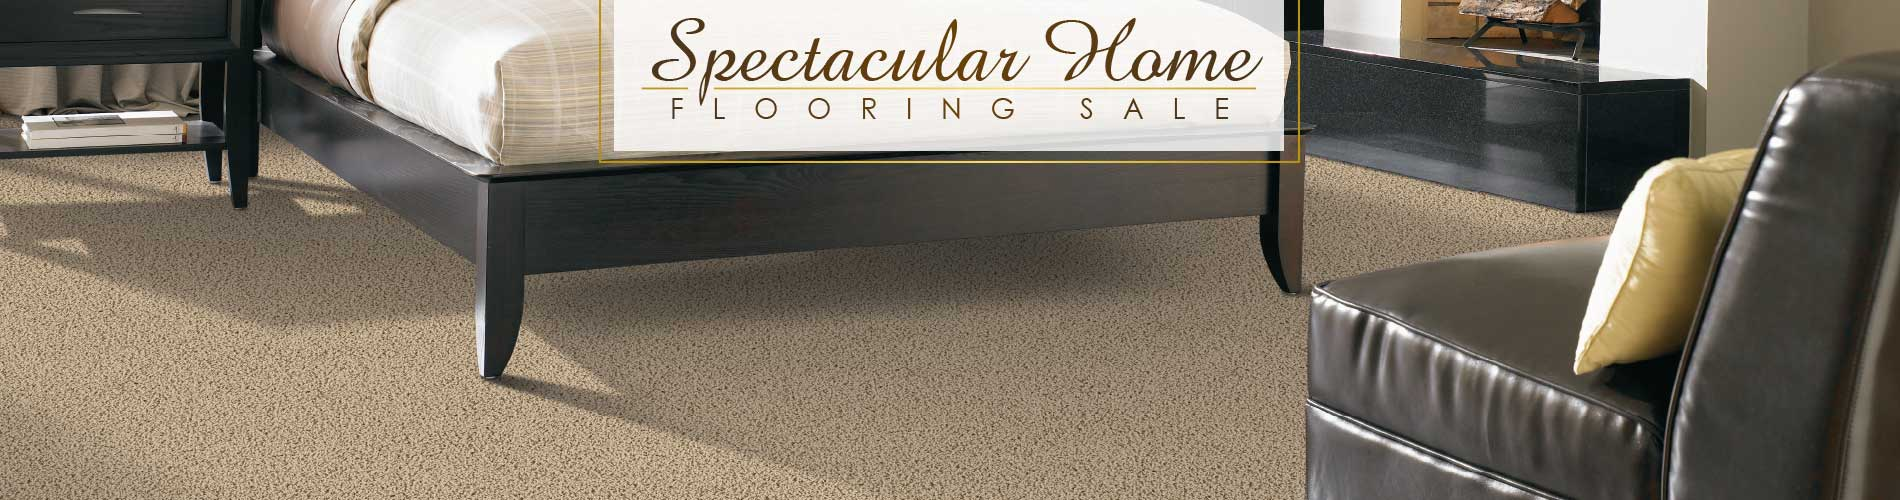 Spectacular Home Flooring Sale